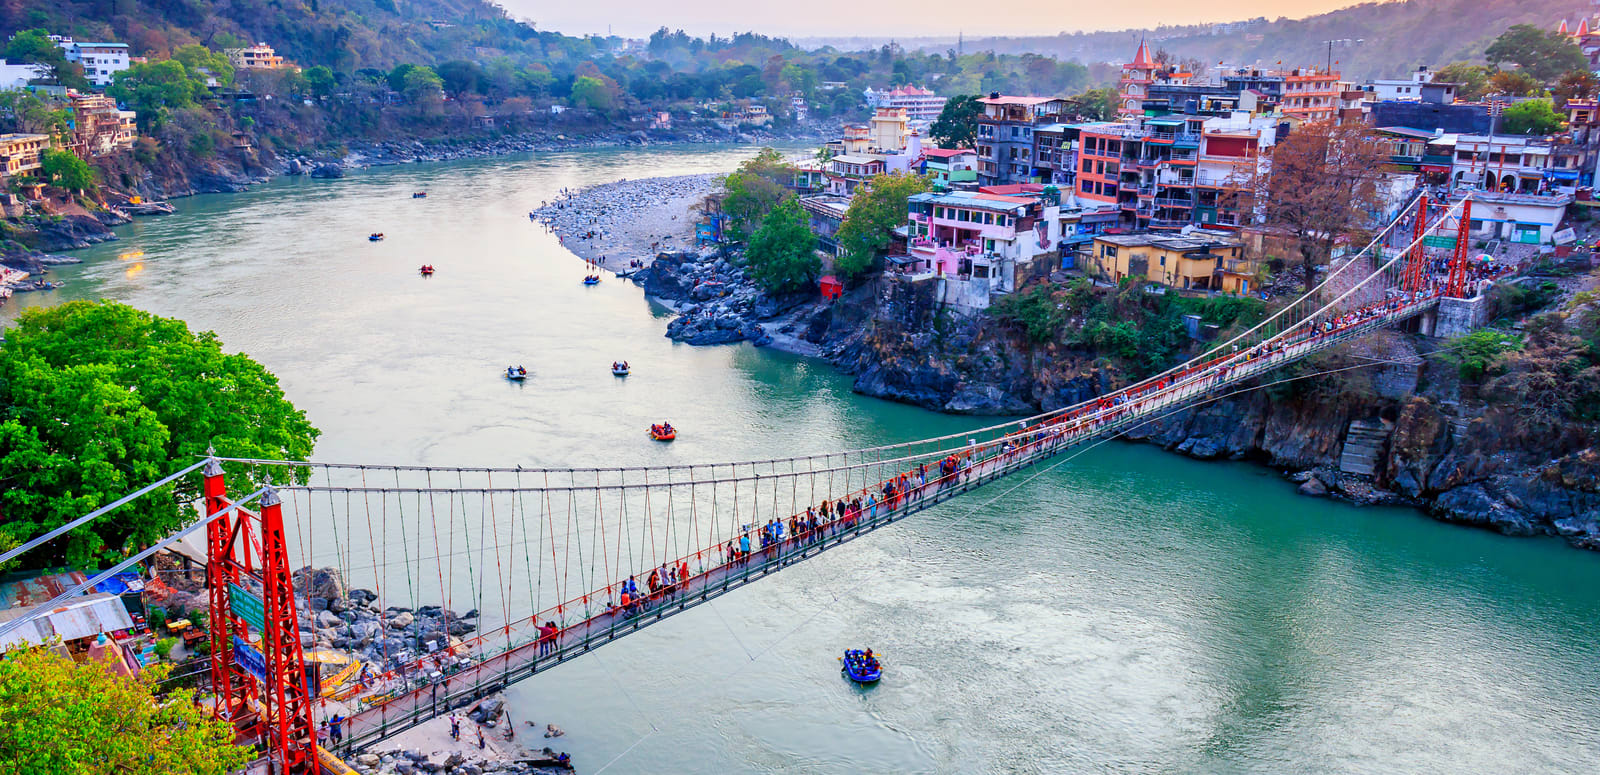 30 Places to Visit in Rishikesh - 2019 (Photos & 5,700+ Reviews)